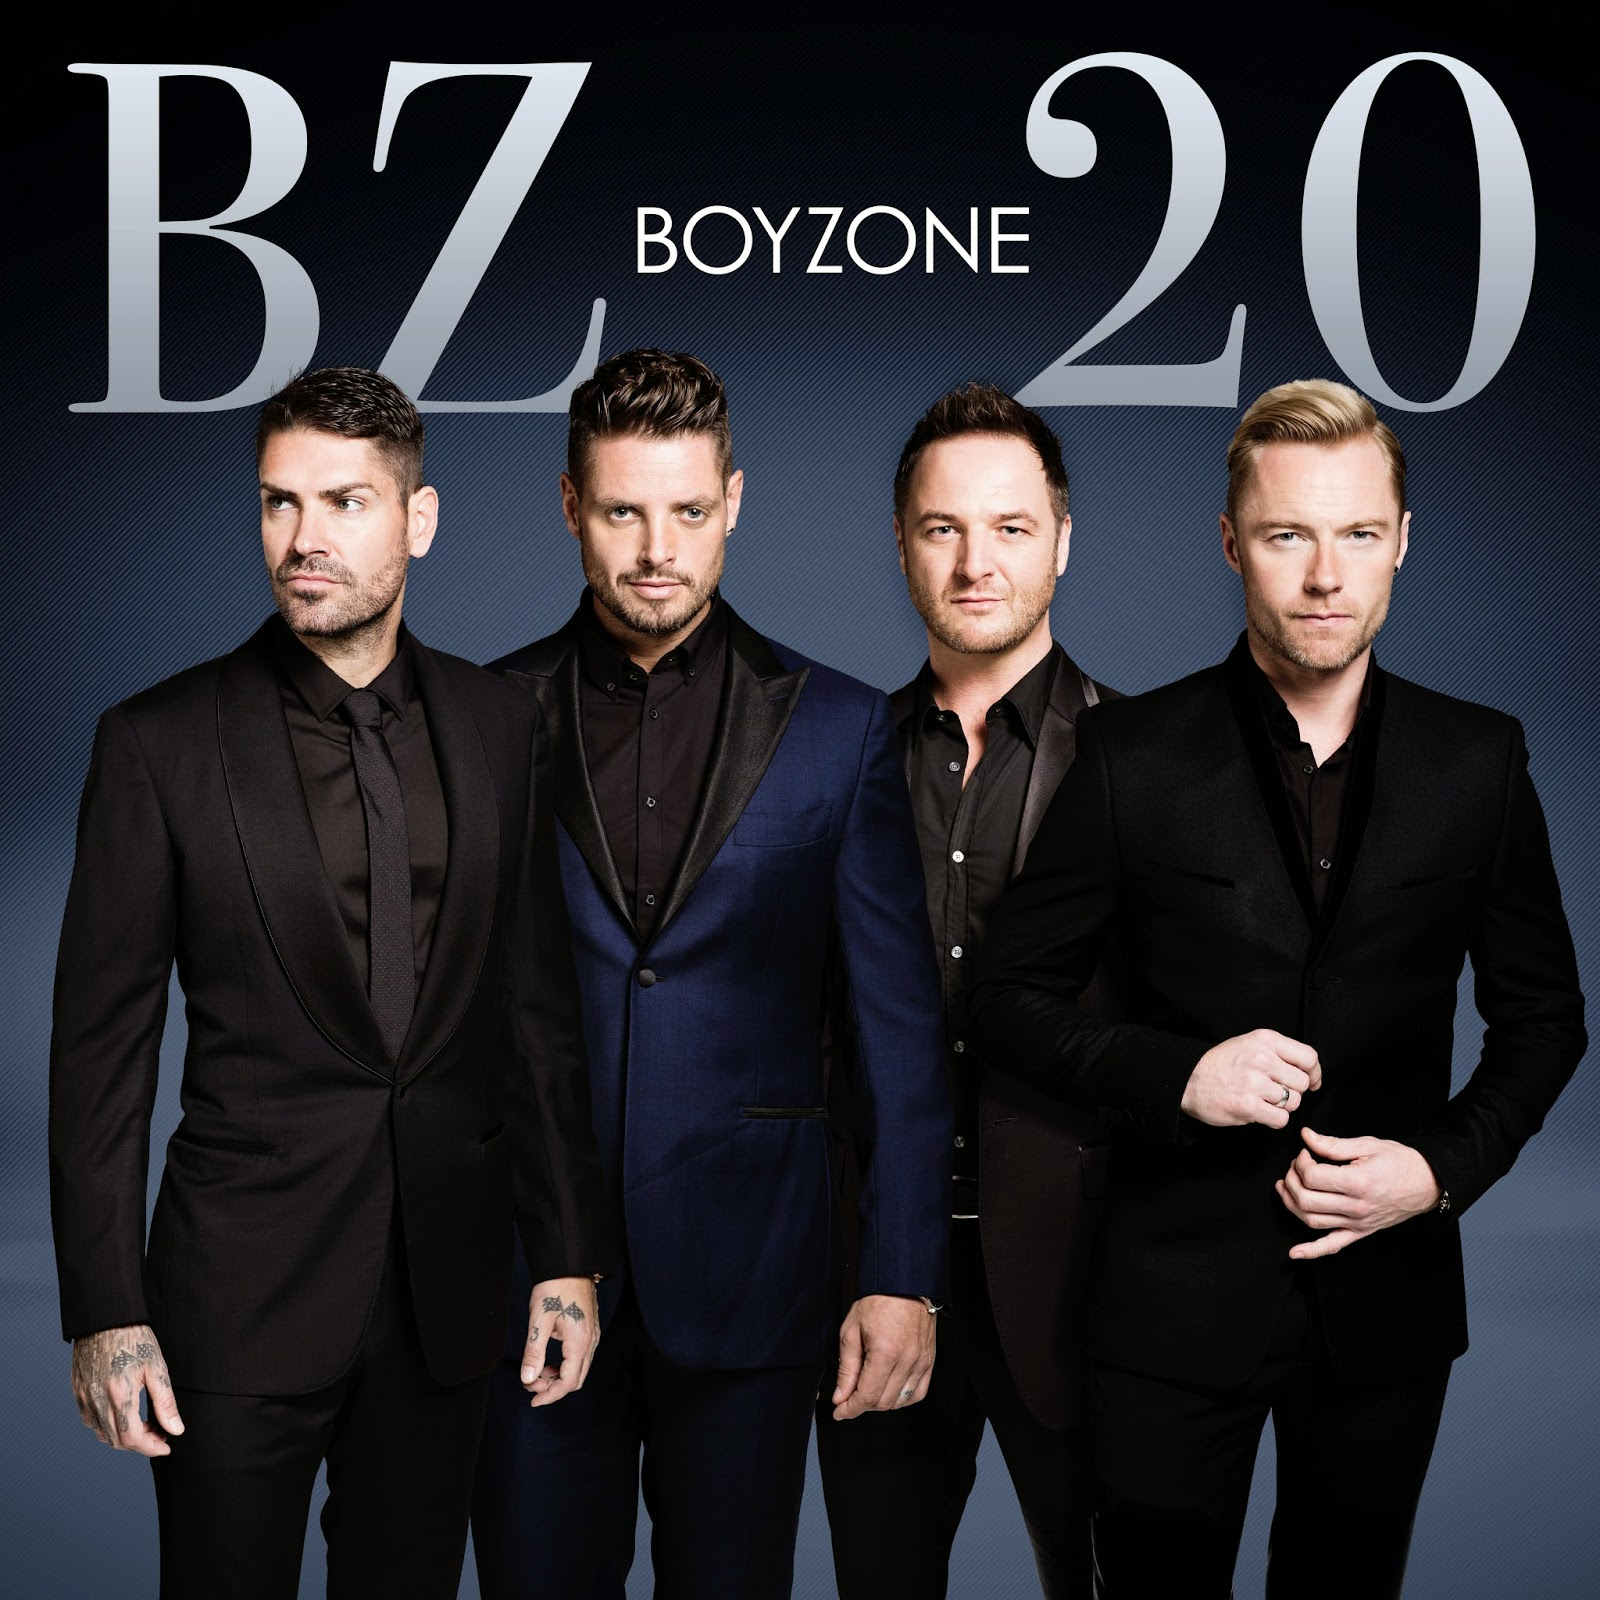 Boyzone to have a one-night performance in Singapore